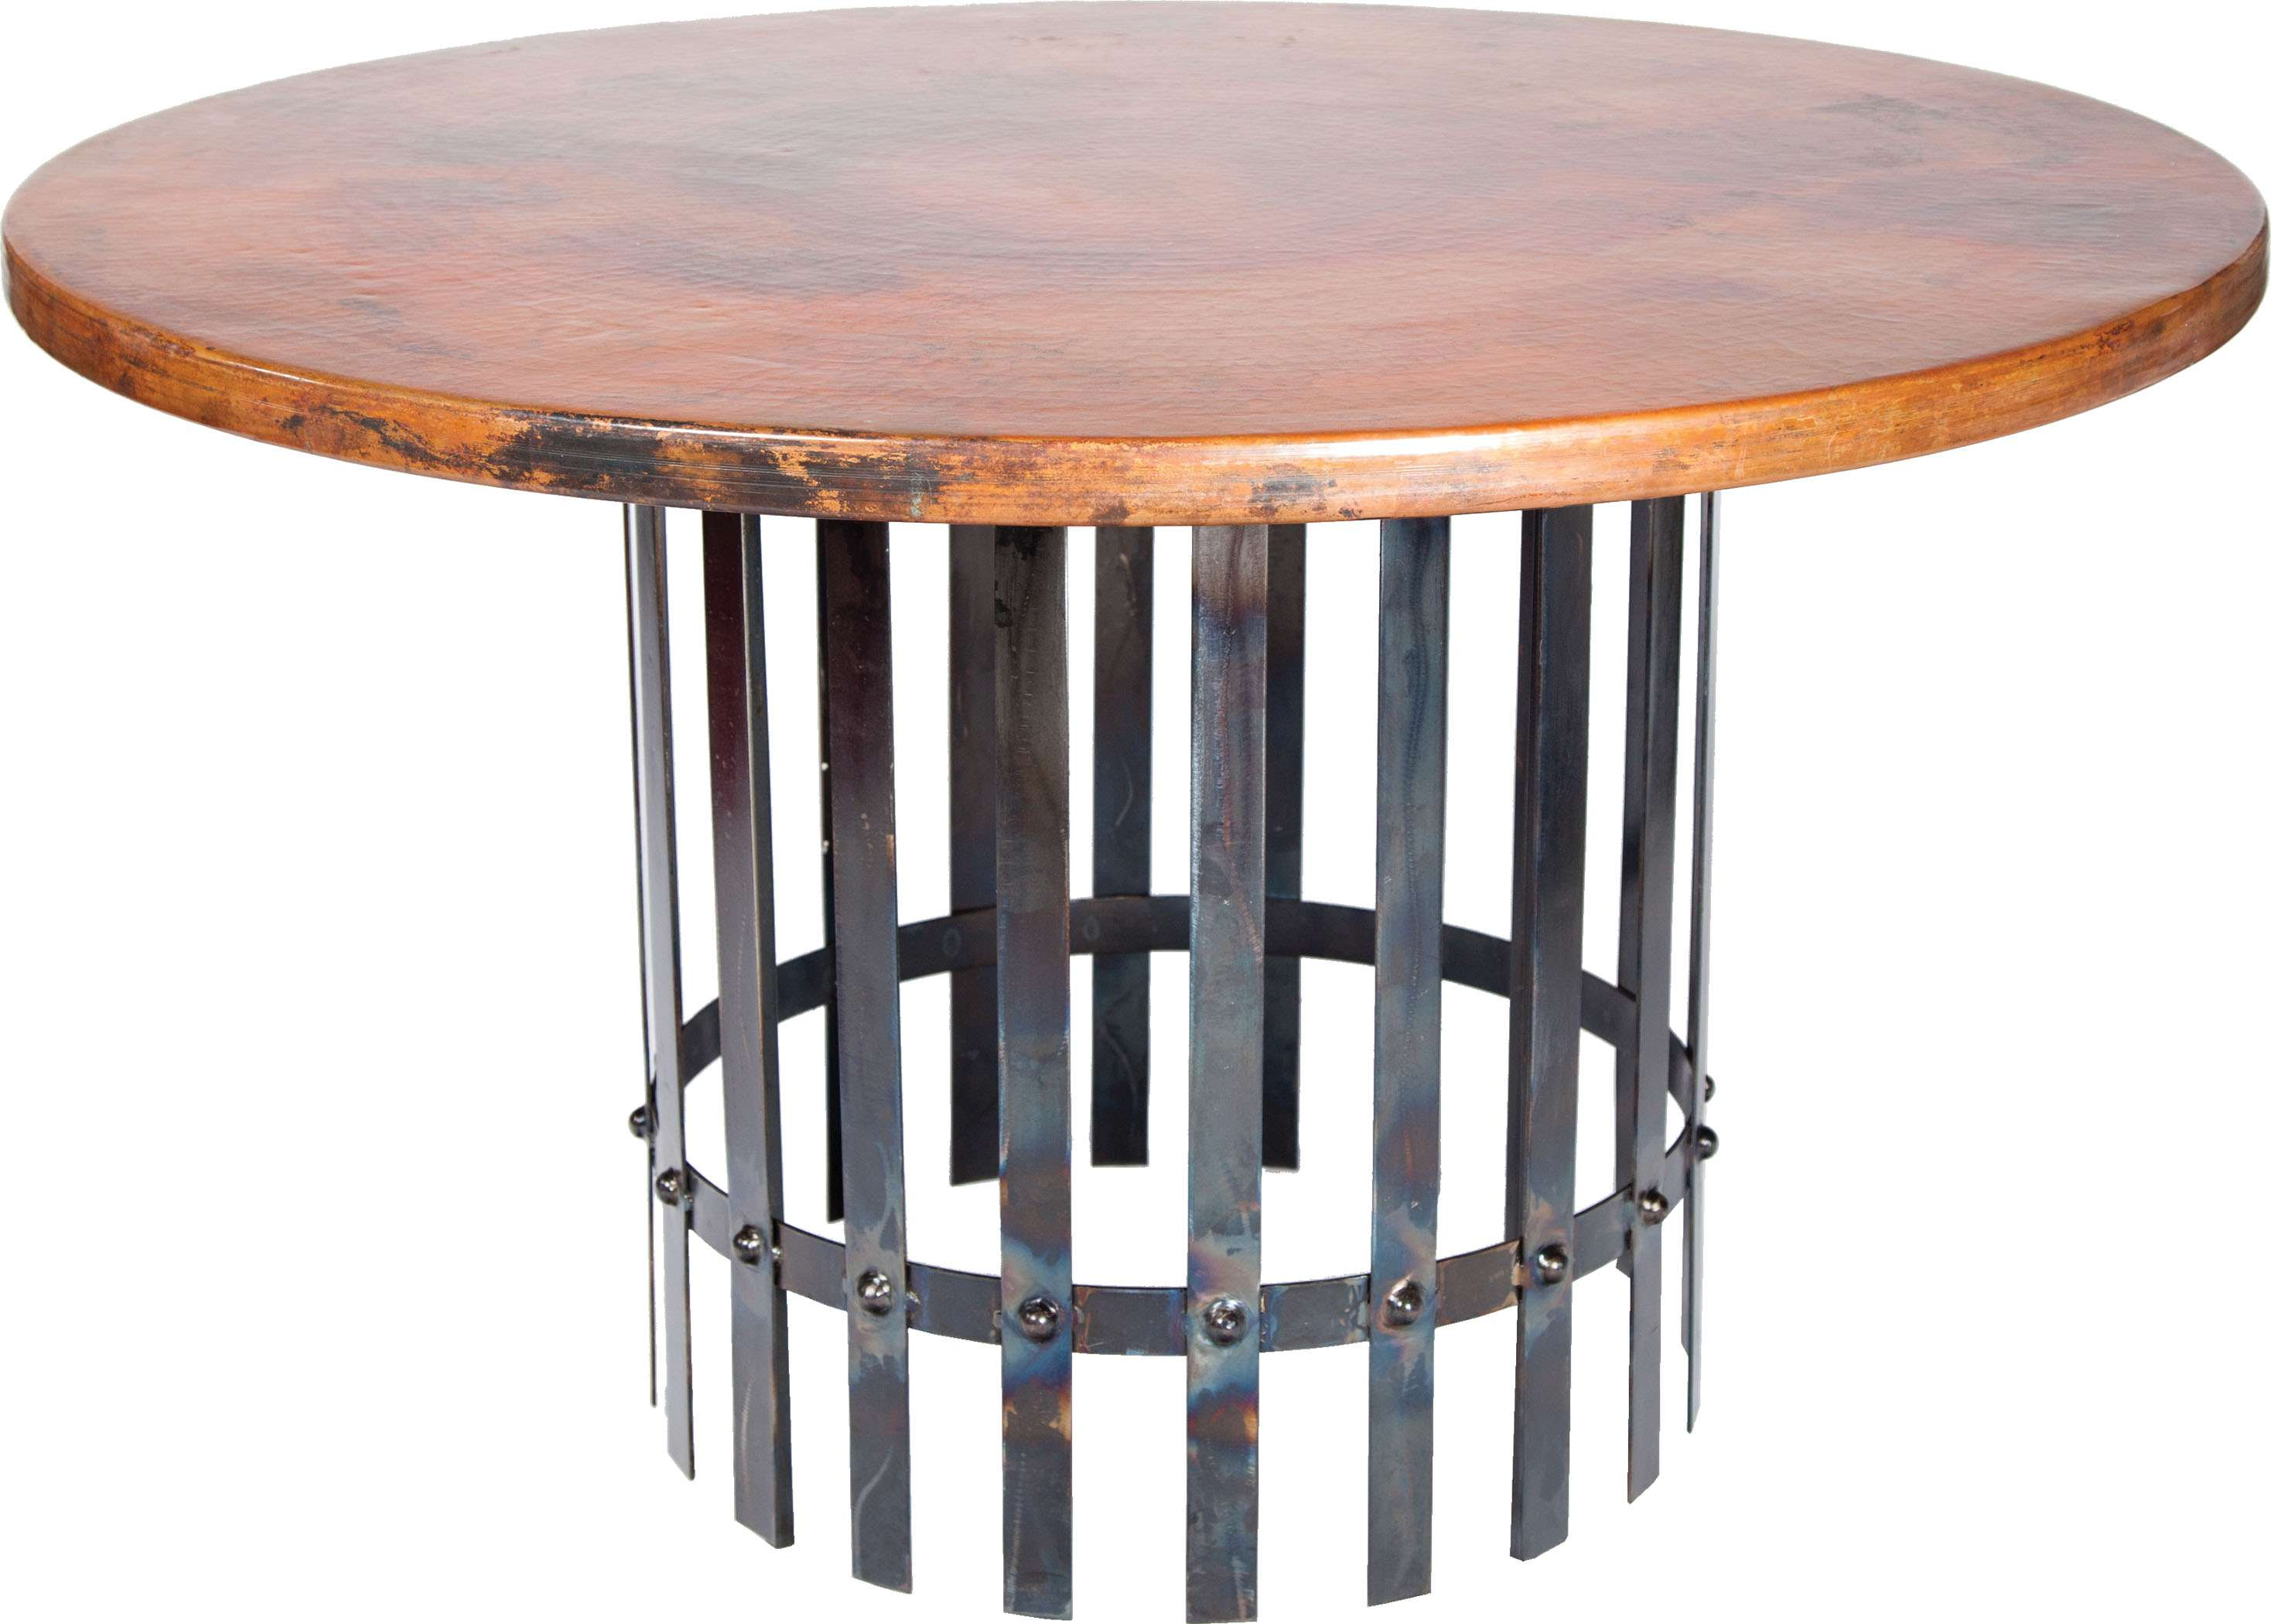 Prima Design Source Ashton Brown Dining Table With 48 Round Hammered Copper Top 2m5 F 261a Goedekers Com